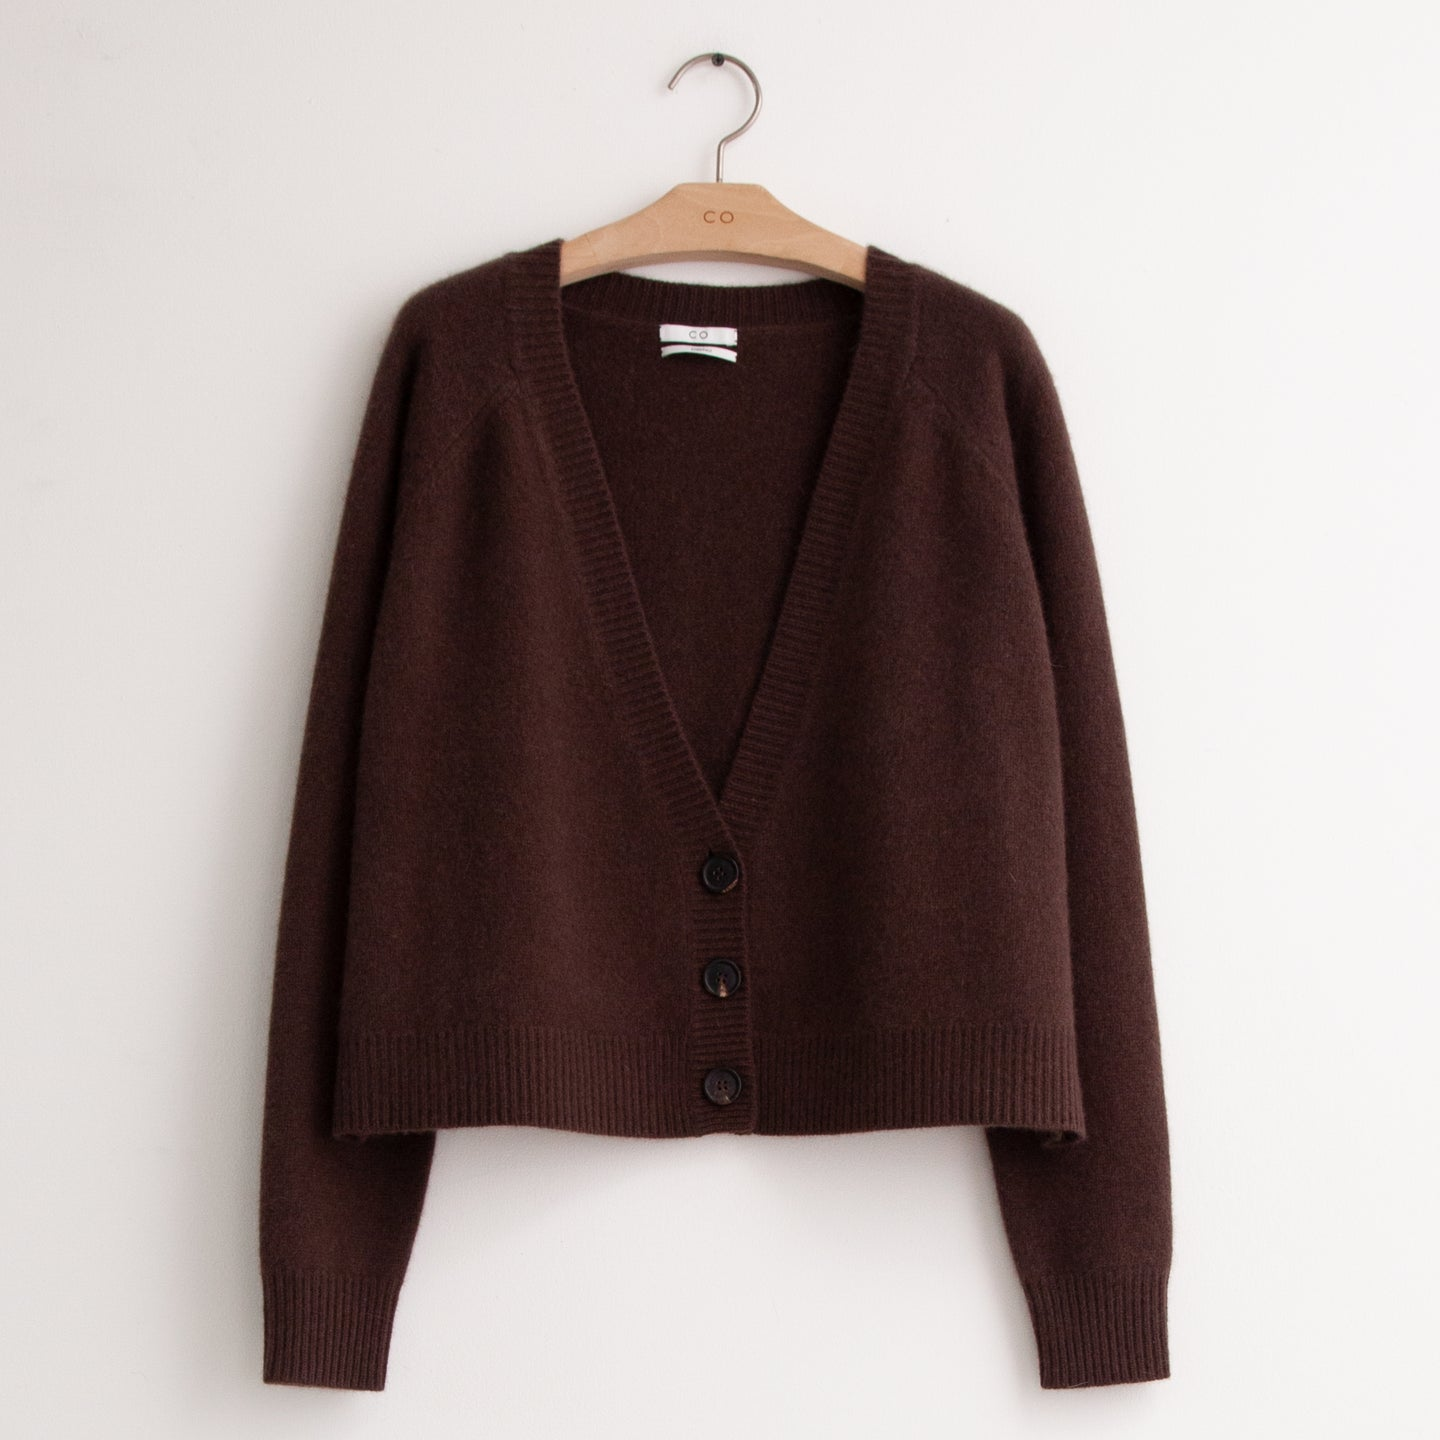 Boxy, slightly cropped button front cardigan in brown cashmere - CO